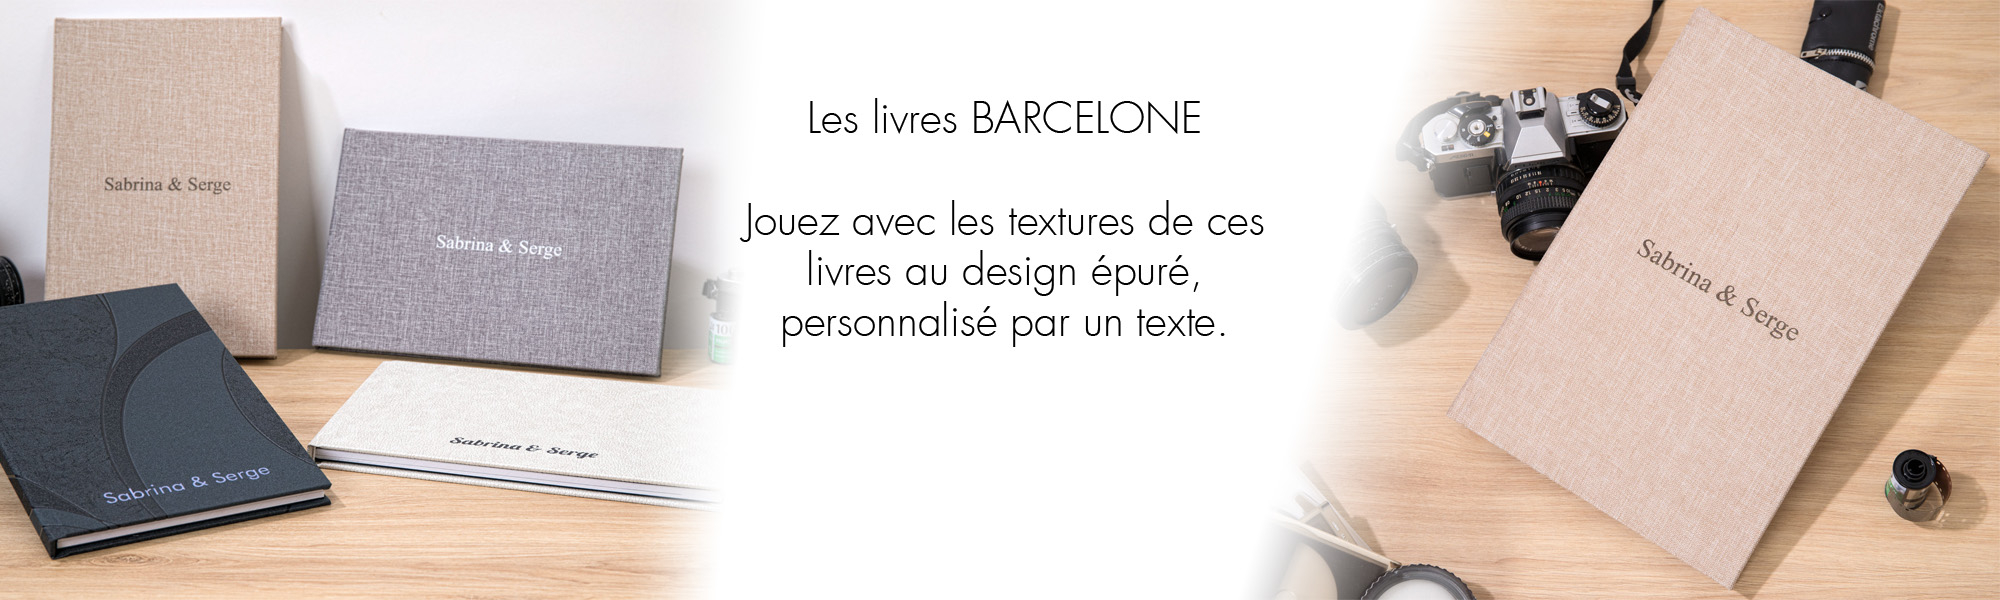 Gamme BARCELONE